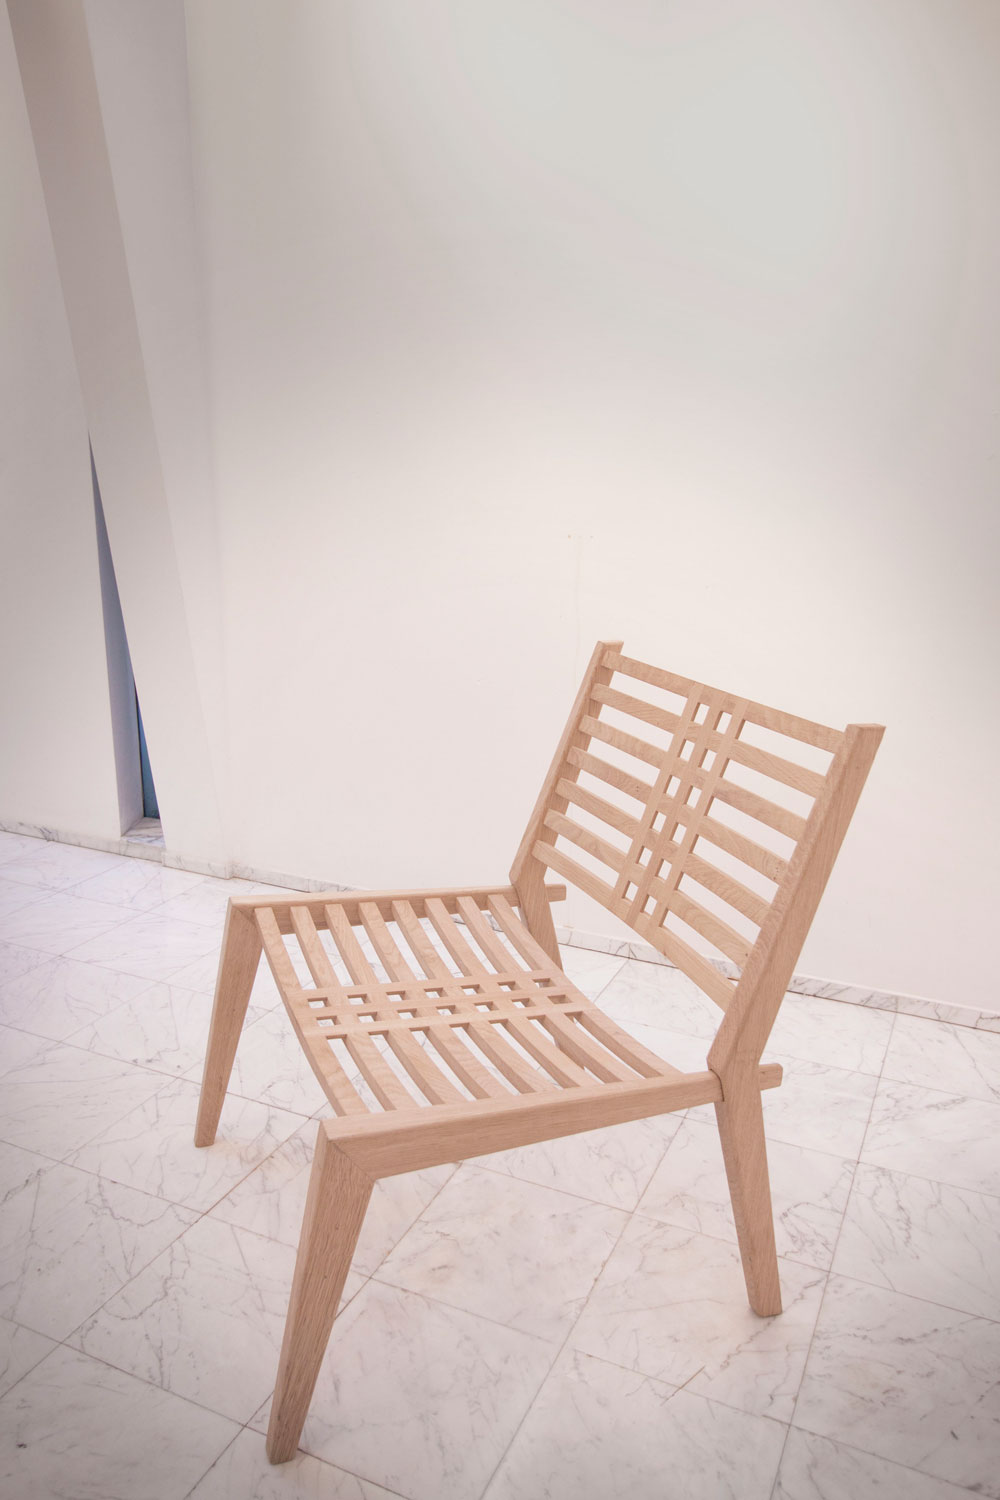 Chair_No_85-7.jpg